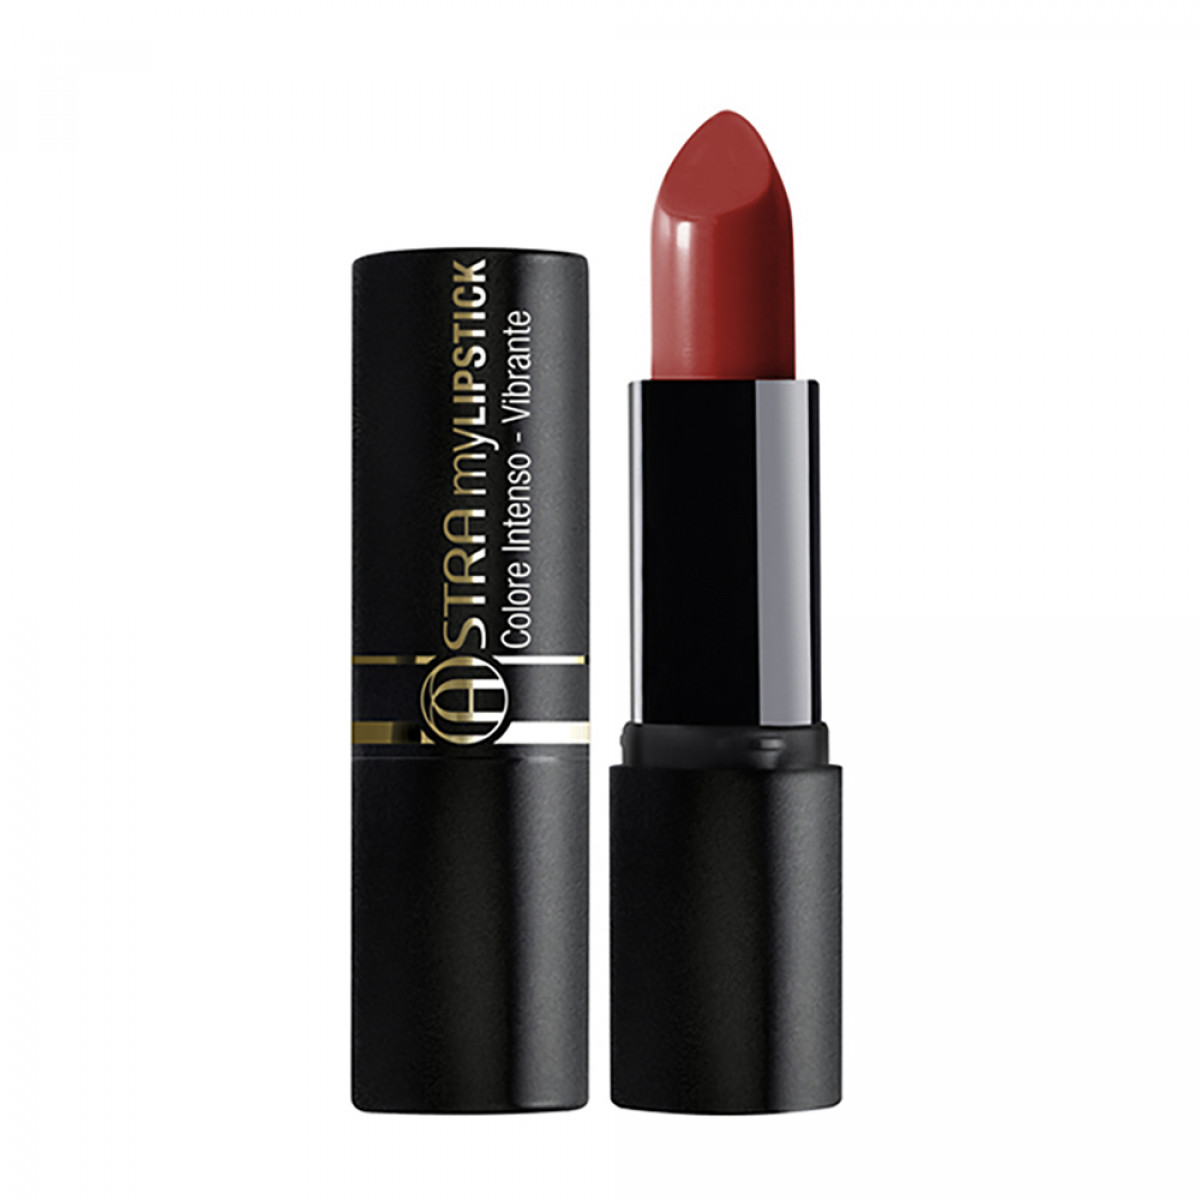 Rouge à lèvres Astra MyLipstick  4g couleur Euribia 07